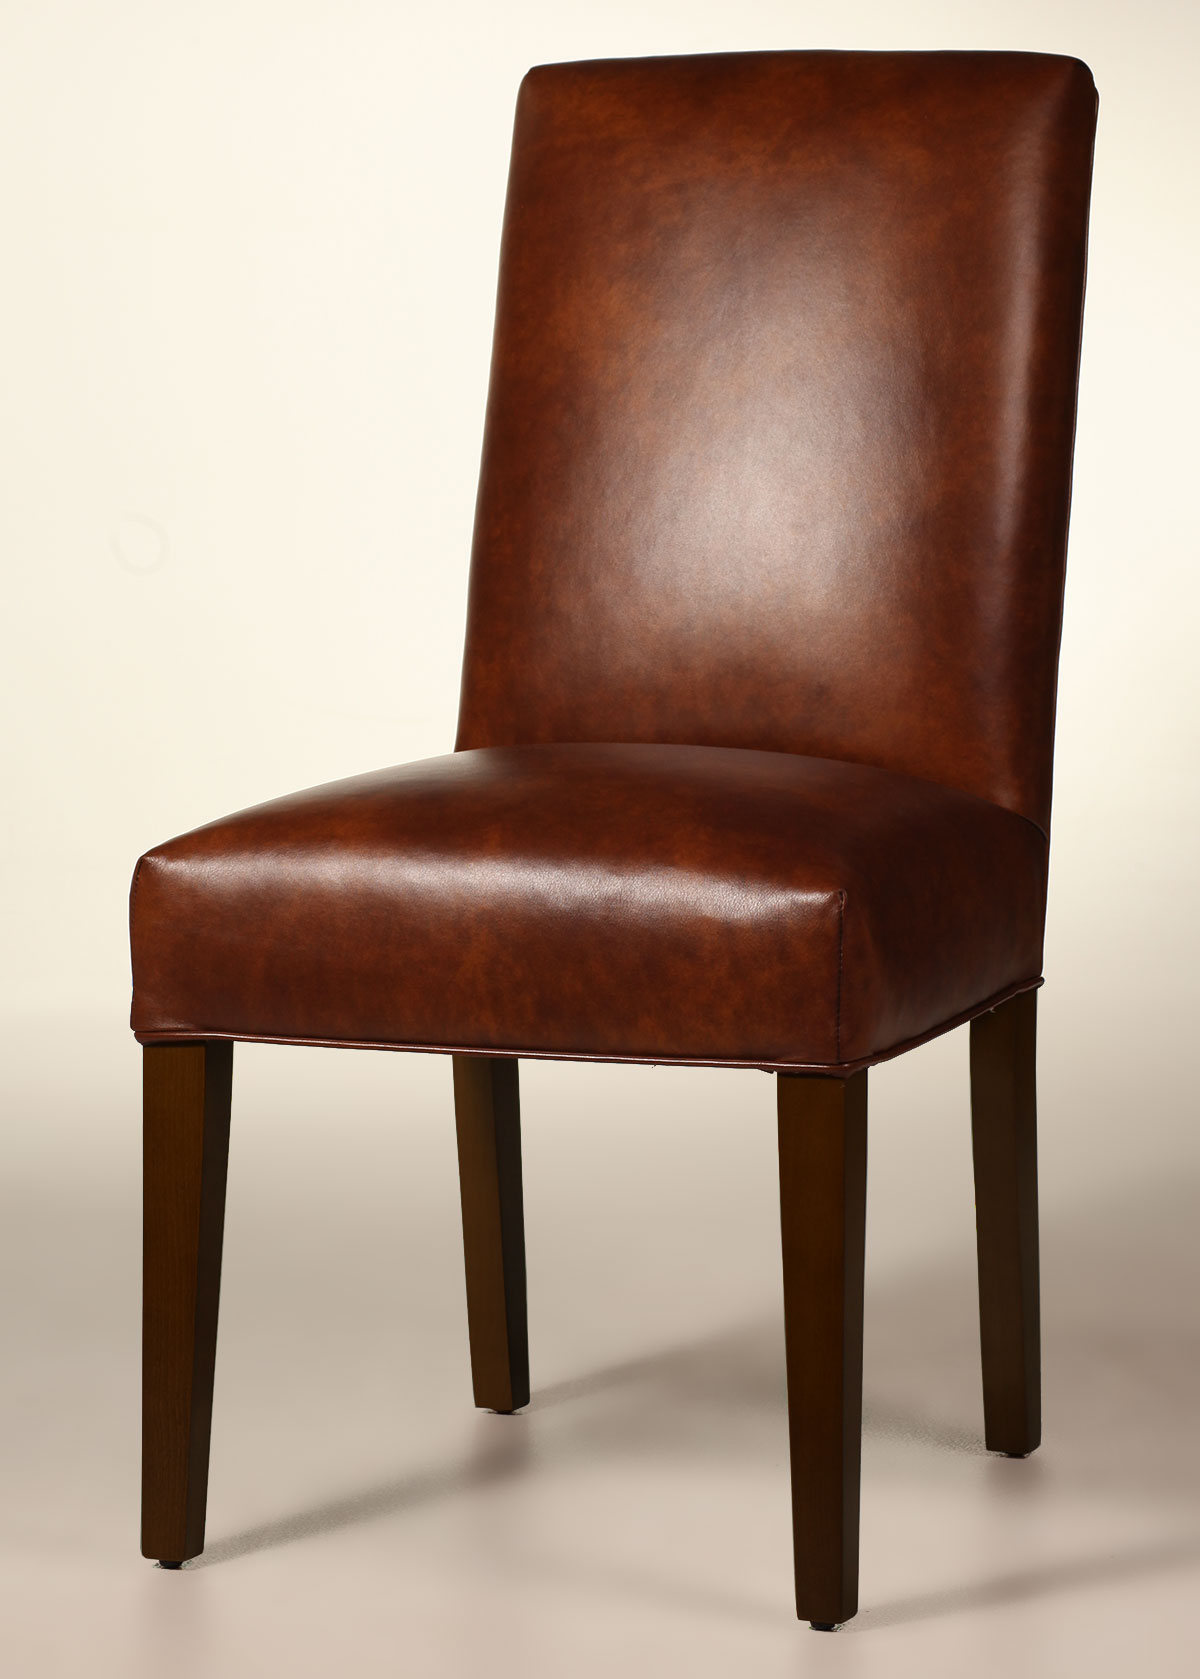 Chair Dining Bristol Straight Back Leather Dining Chair With Tapered